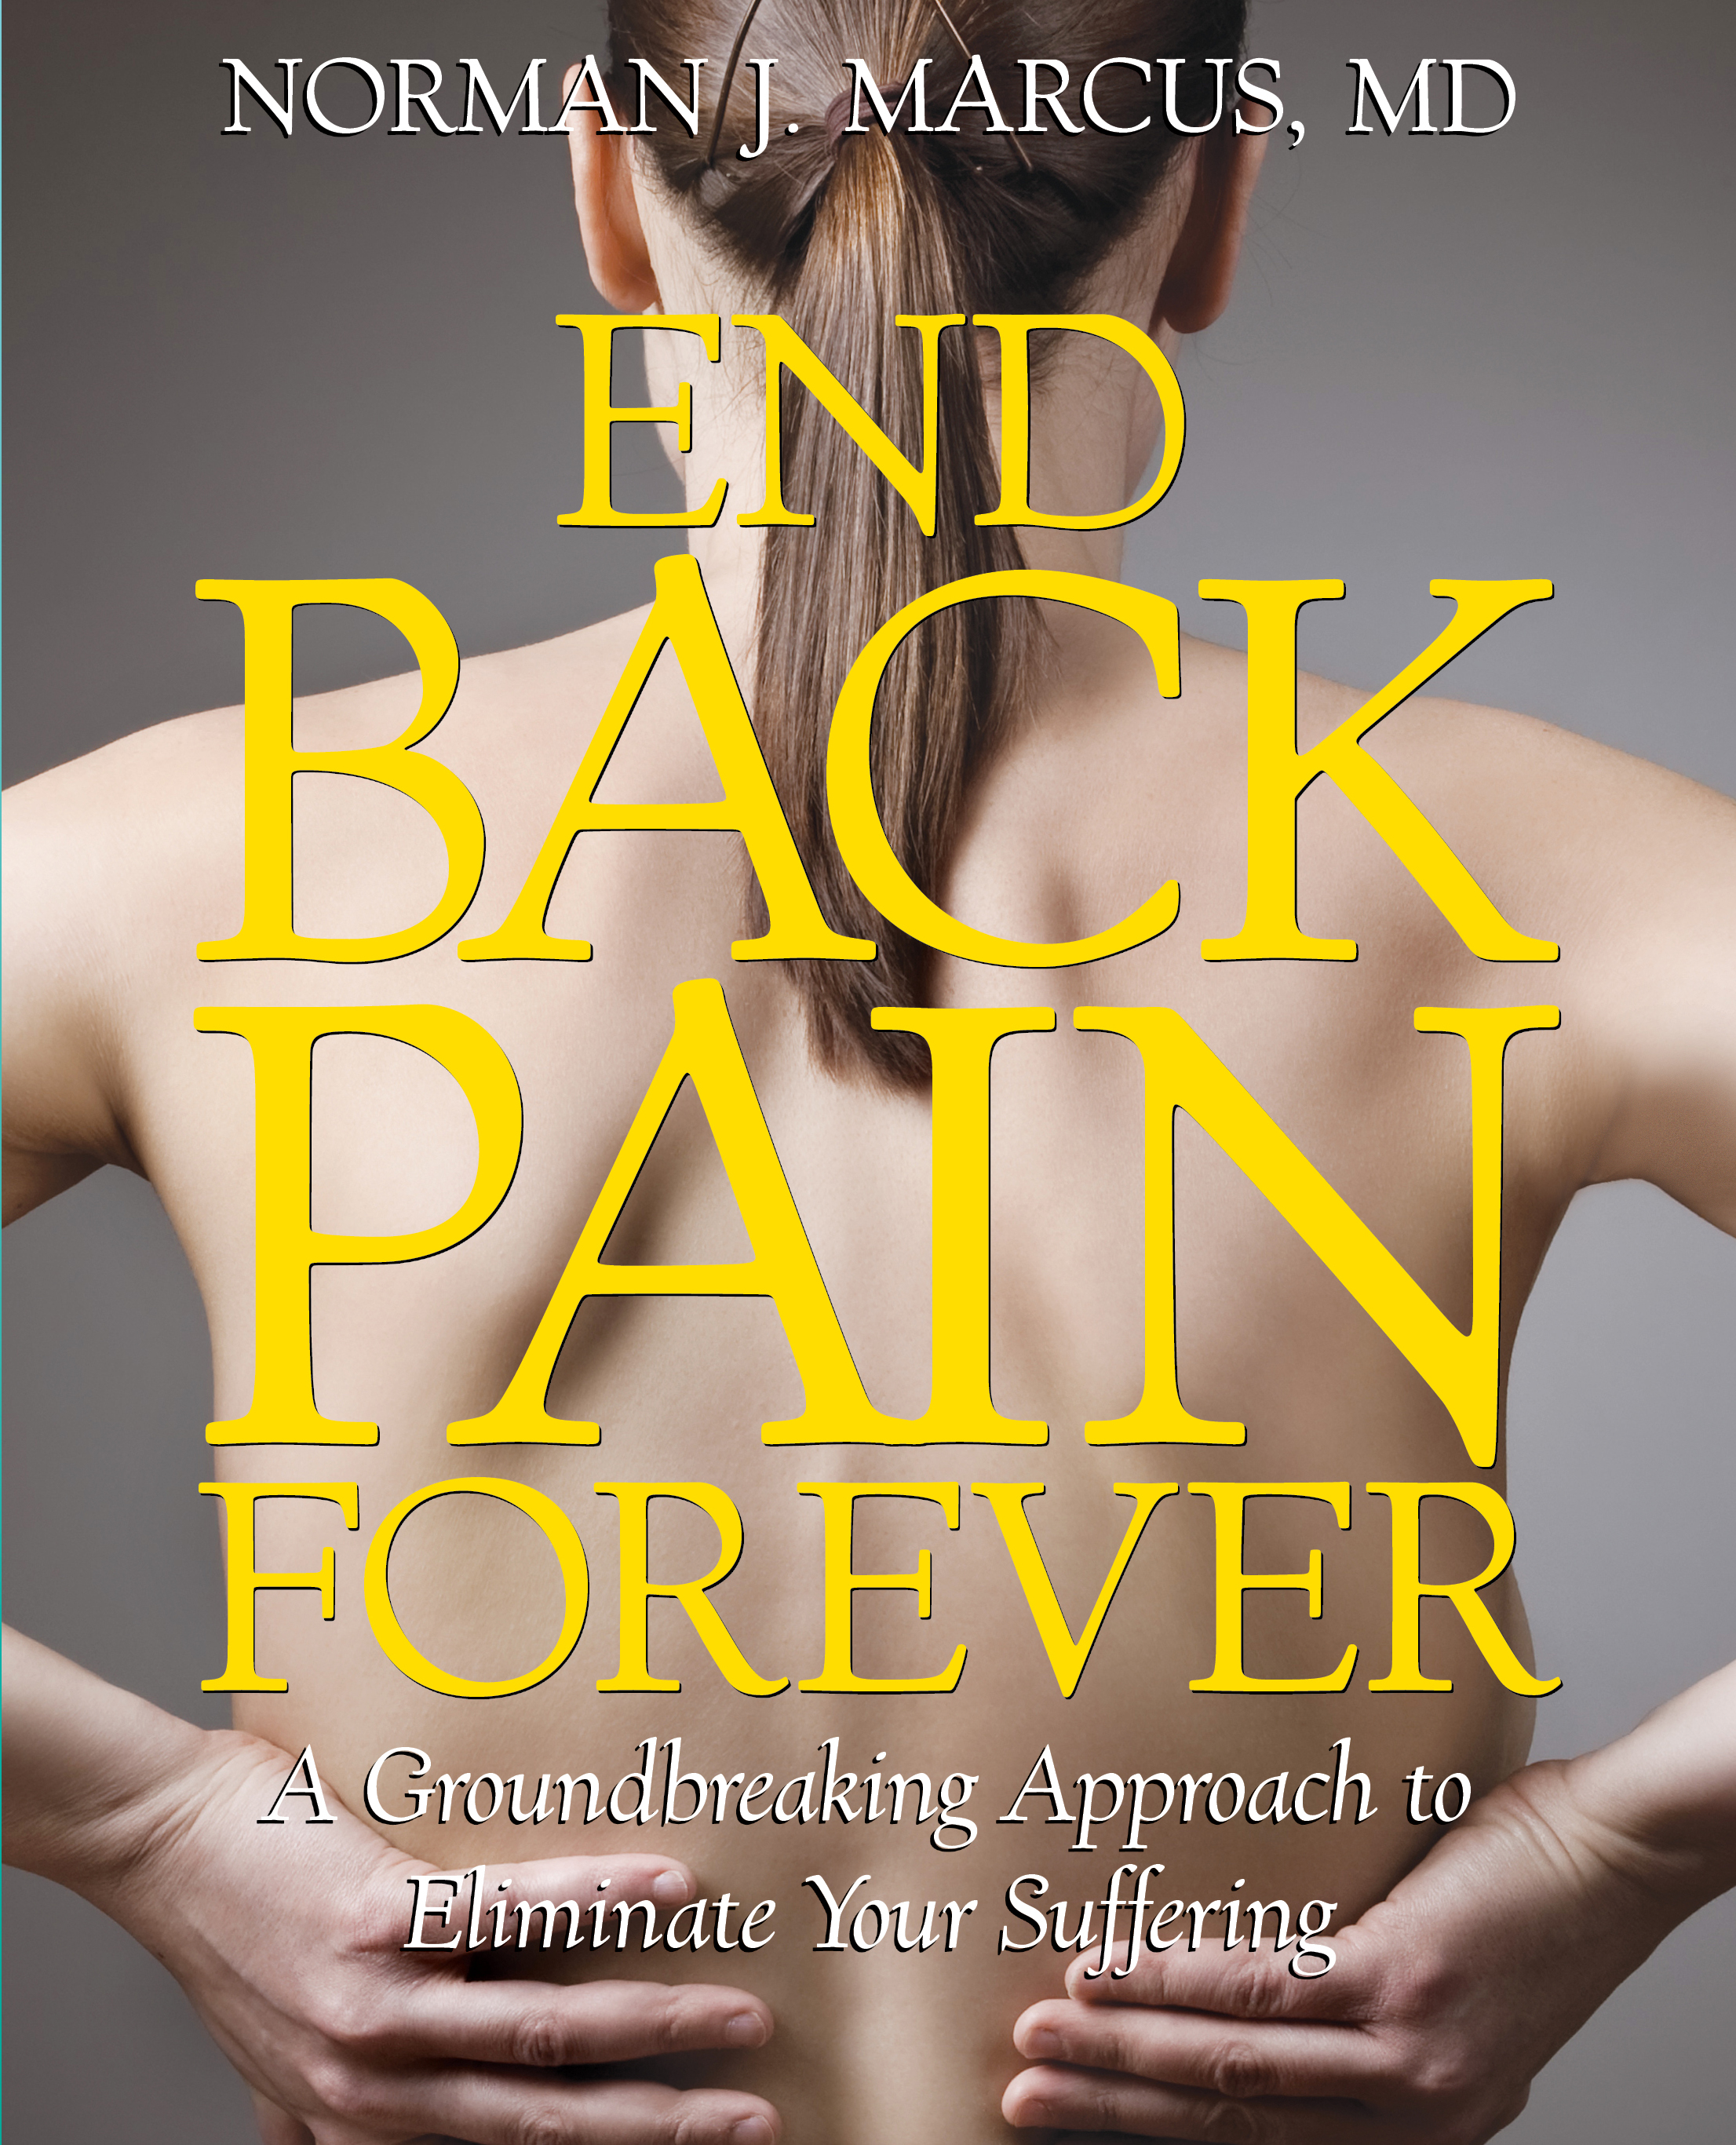 treating pain by ending life Part 1 treating the pain by ending a life is very persuasive in my eyes the thing that helped to make the essays more creditable is that each essay in chapter 51 started with the background and credentials of the author.